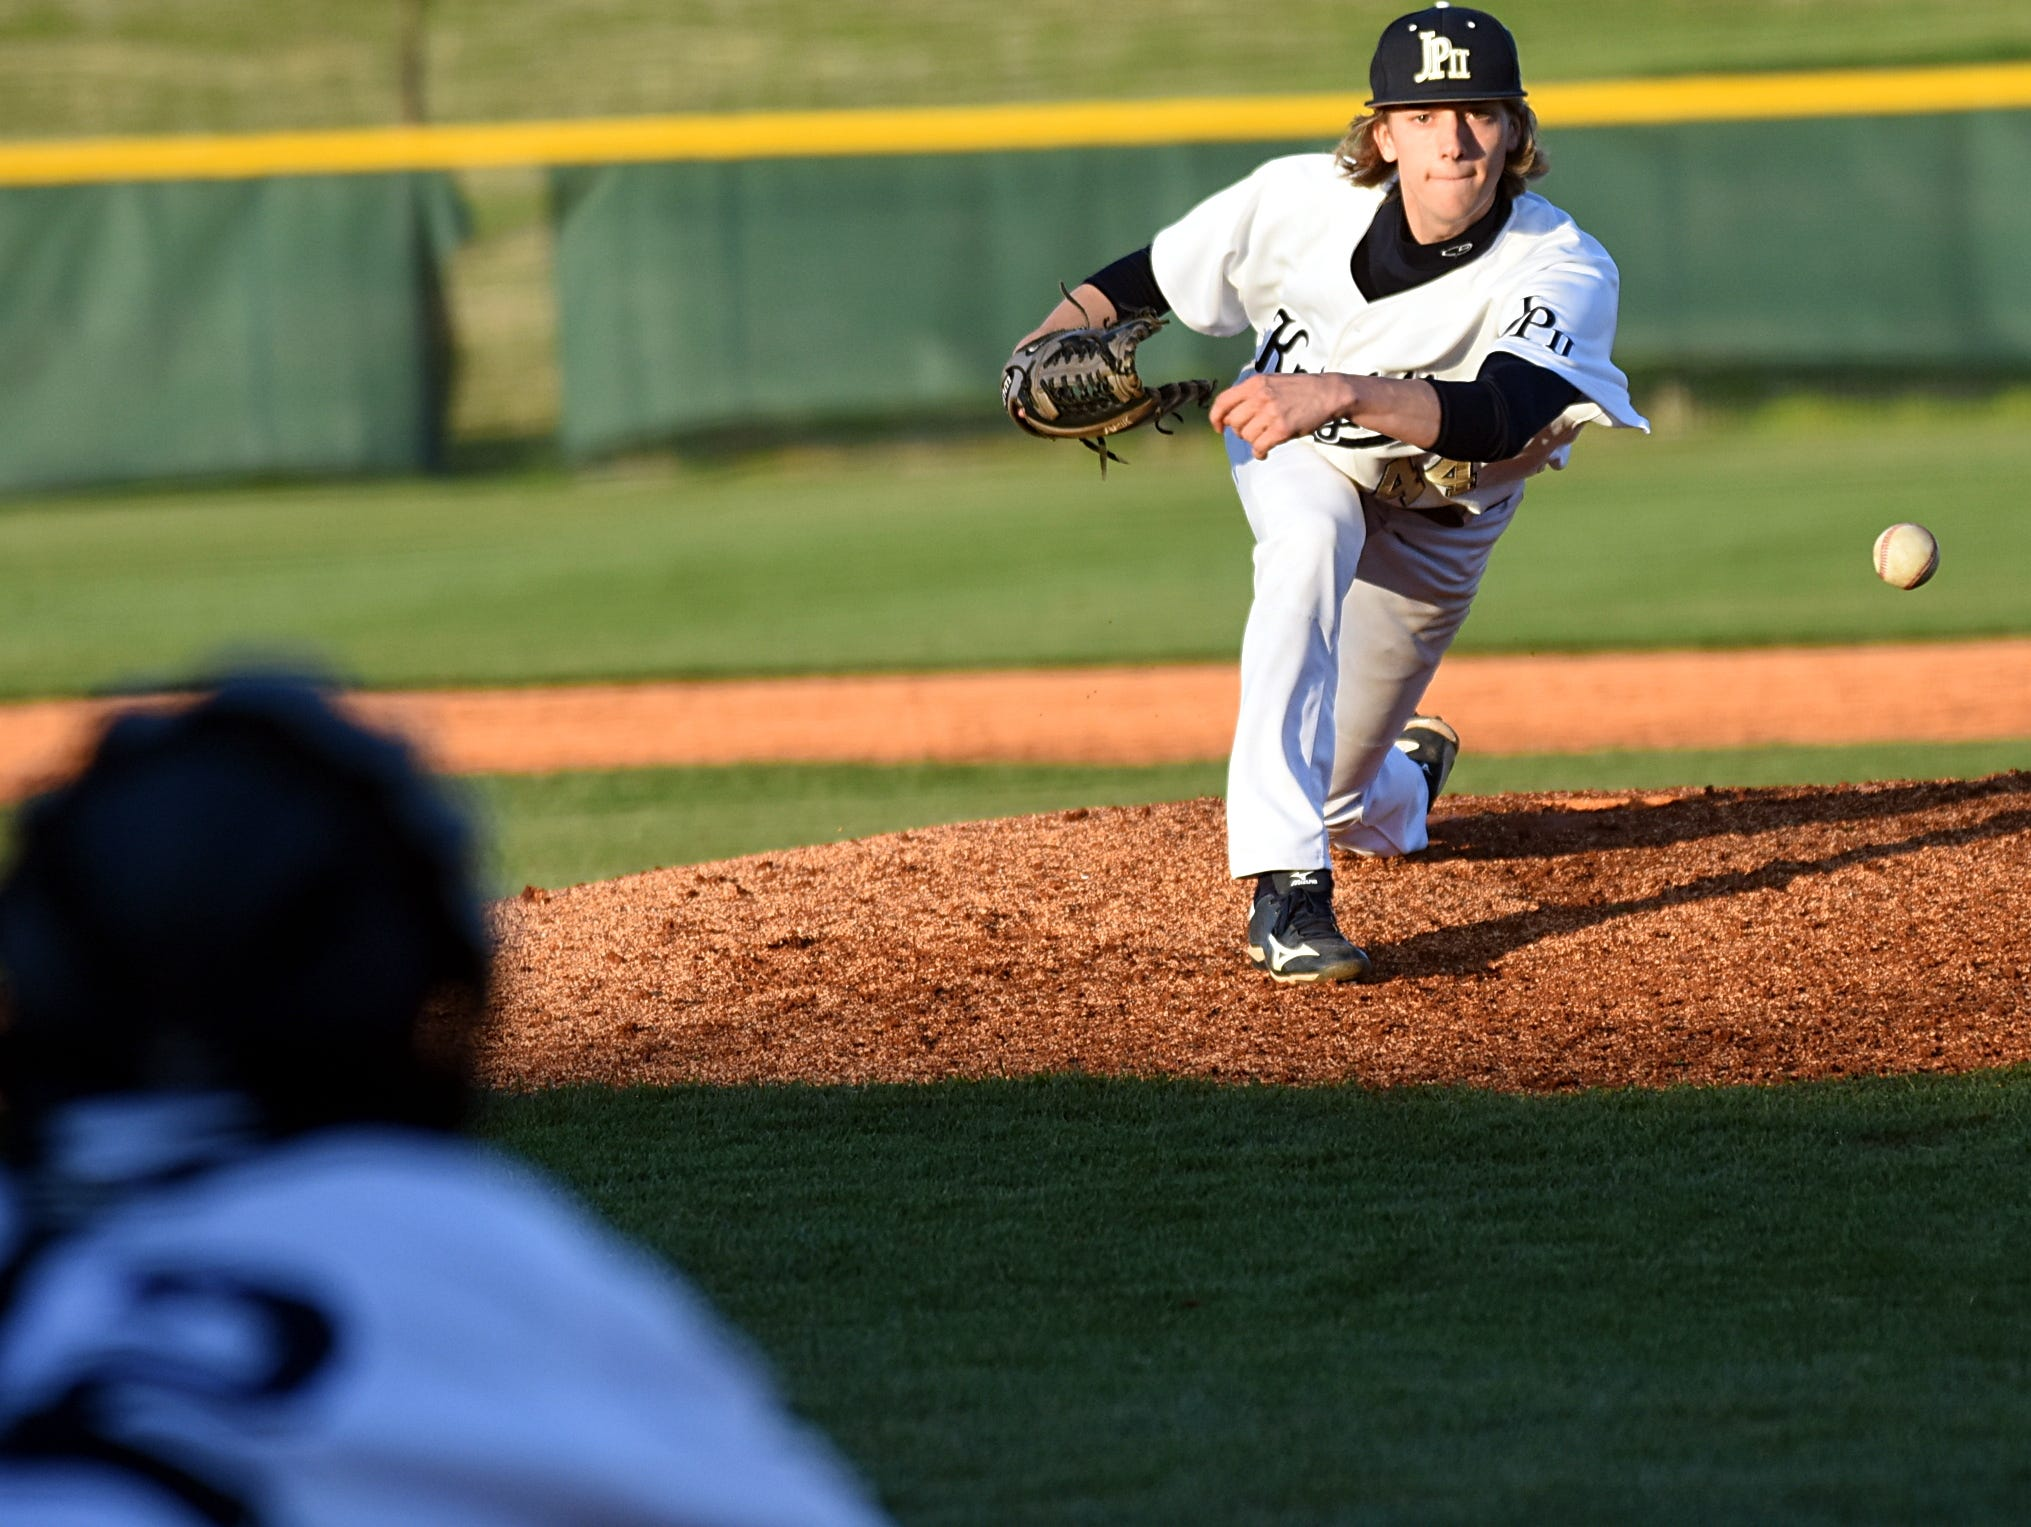 Pope John Paul II High junior Nate Pianto delivers a fifth-inning pitch. Pianto pitched three innings of hitless relief in Tuesday evening's 8-2 win over visiting Madison (Ohio) High.